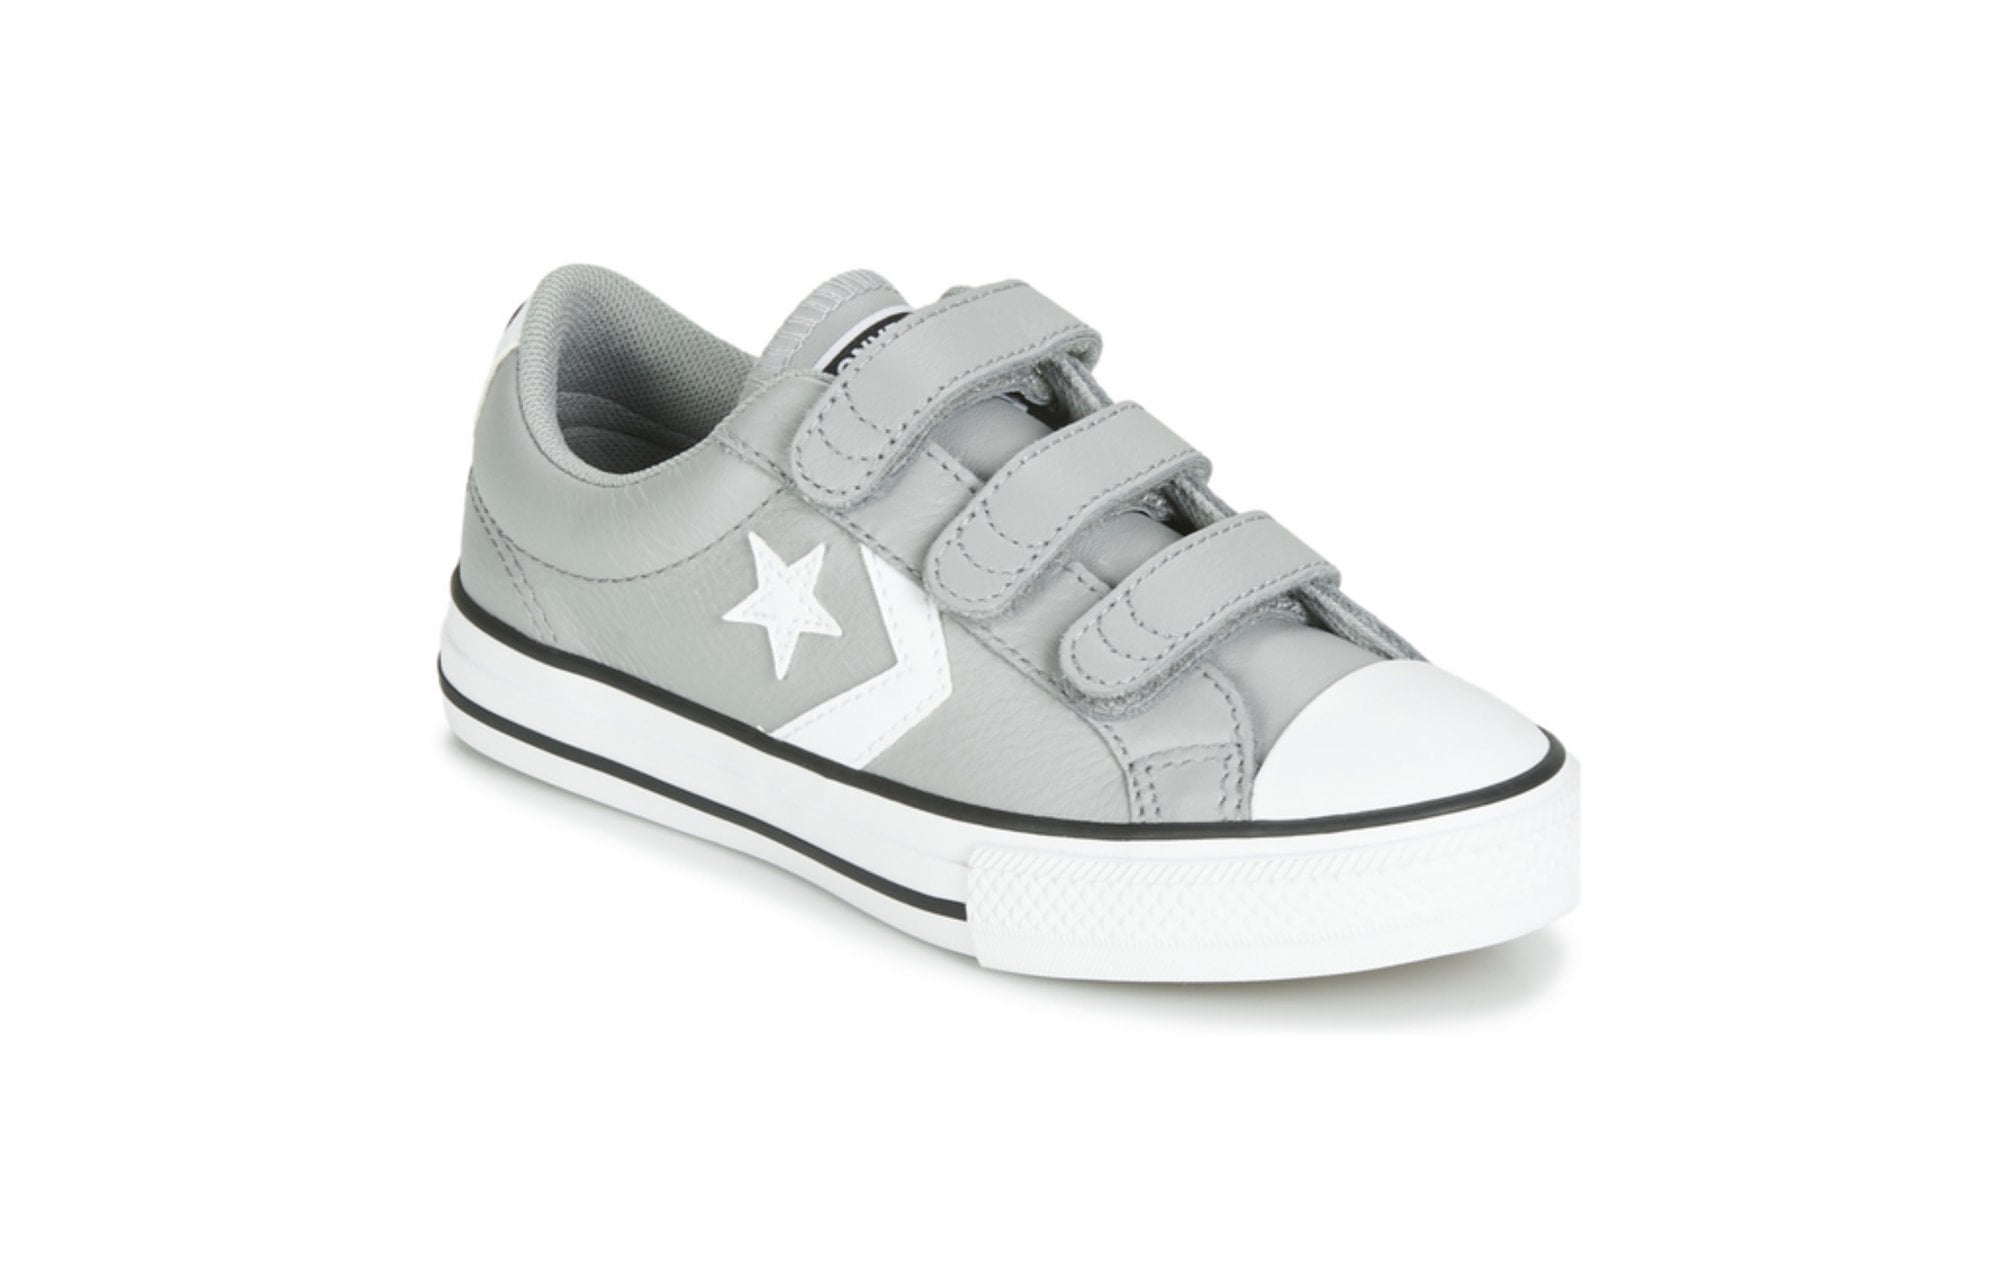 molestarse Encogerse de hombros representante  CONVERSE Converse Star Player EV 3V Leather Kids Trainers - Grey - Children  from Johnsons Shoes UK